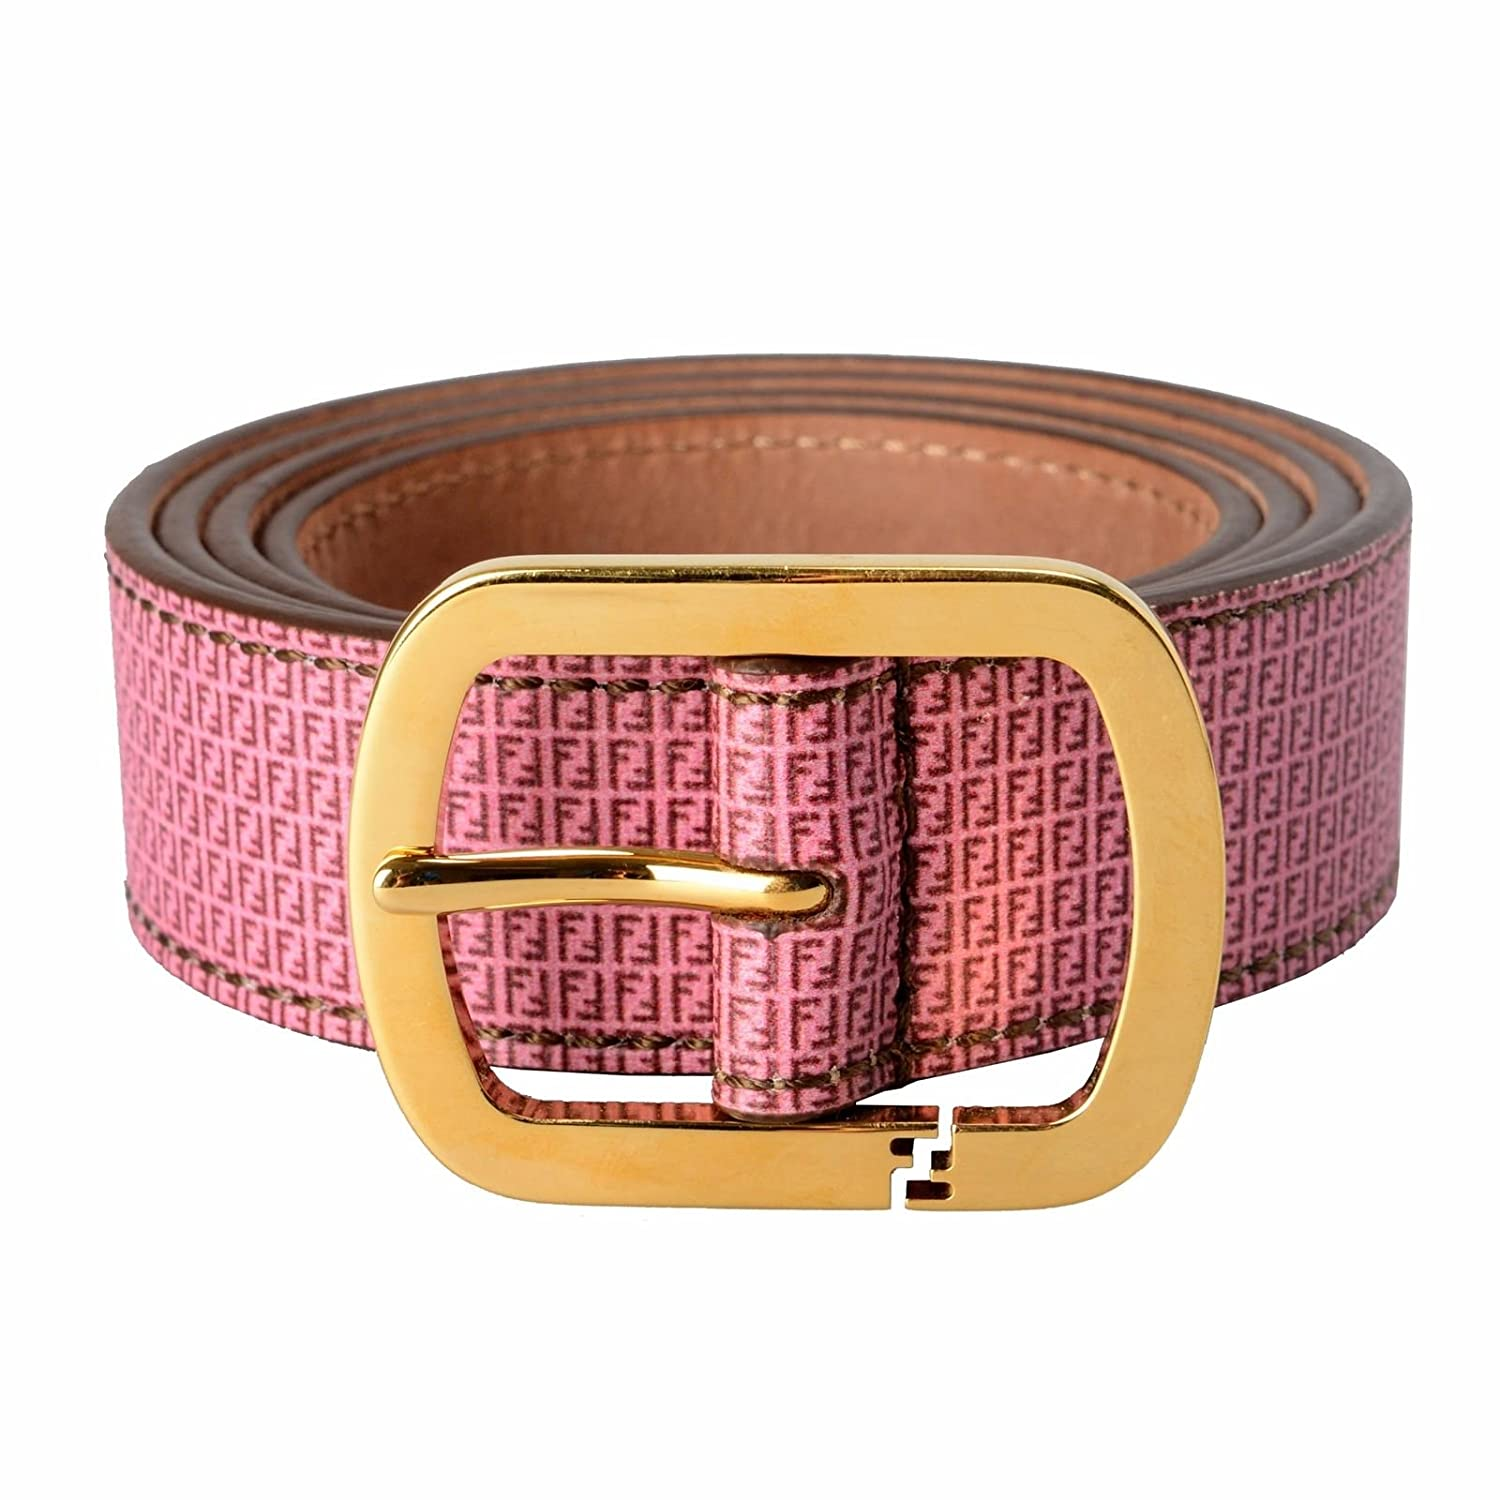 897365b198 Fendi 100% Leather Pink Patterned Women's Gold Buckle Belt Size US ...